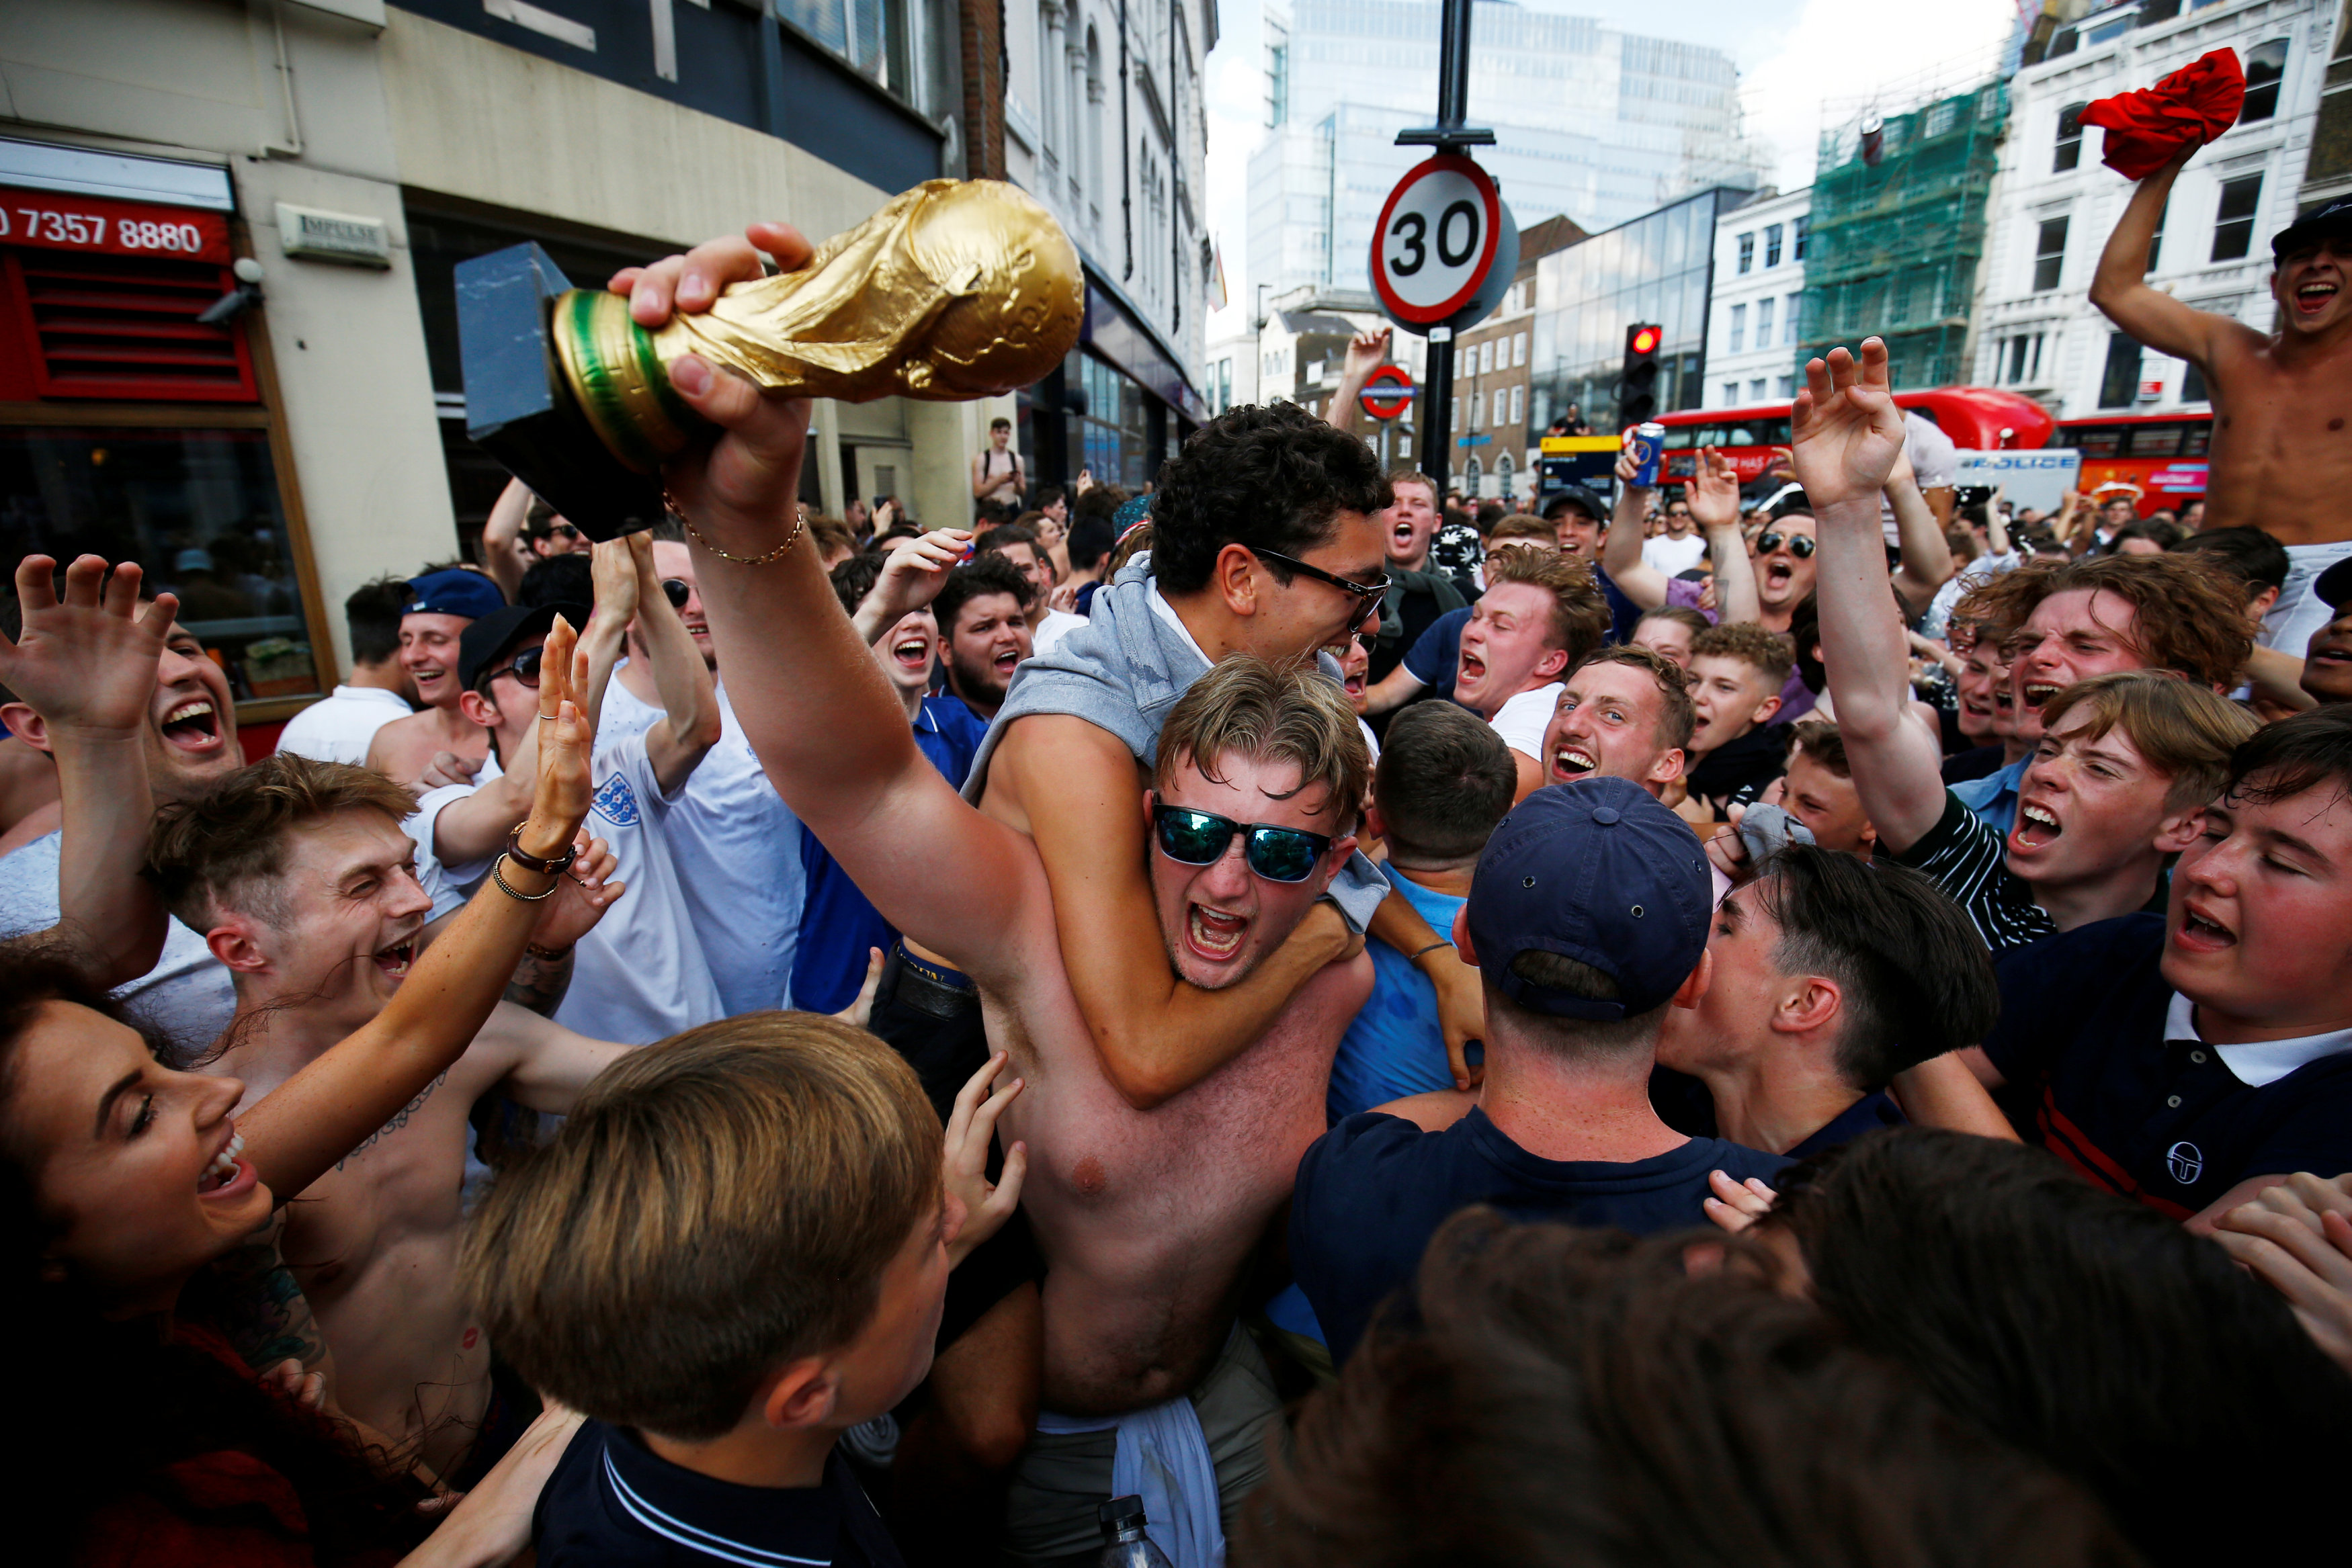 Football: England fans make late dash to Russia for World Cup semi-final